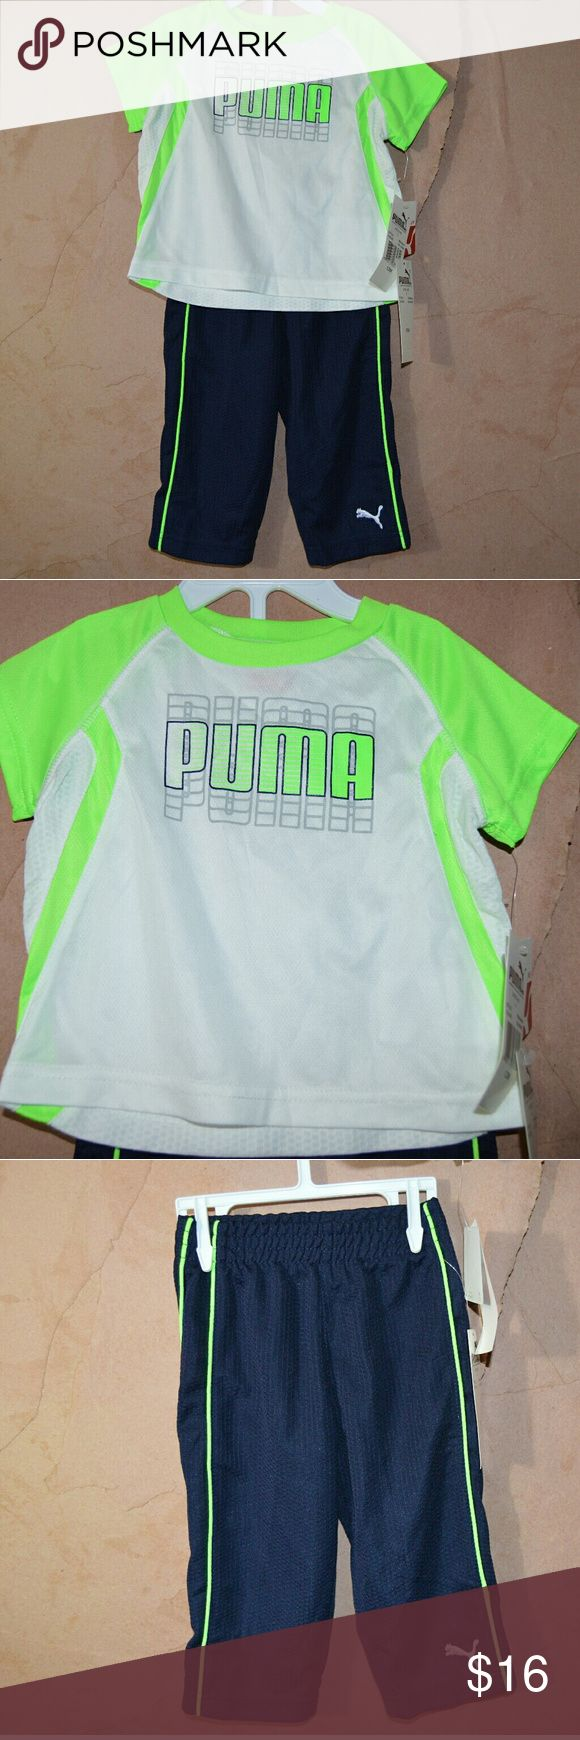 Puma neon green outfit nwt pants tee. 12m PUMA Very stretchy material. Nwt. Hanger not included. Puma Matching Sets